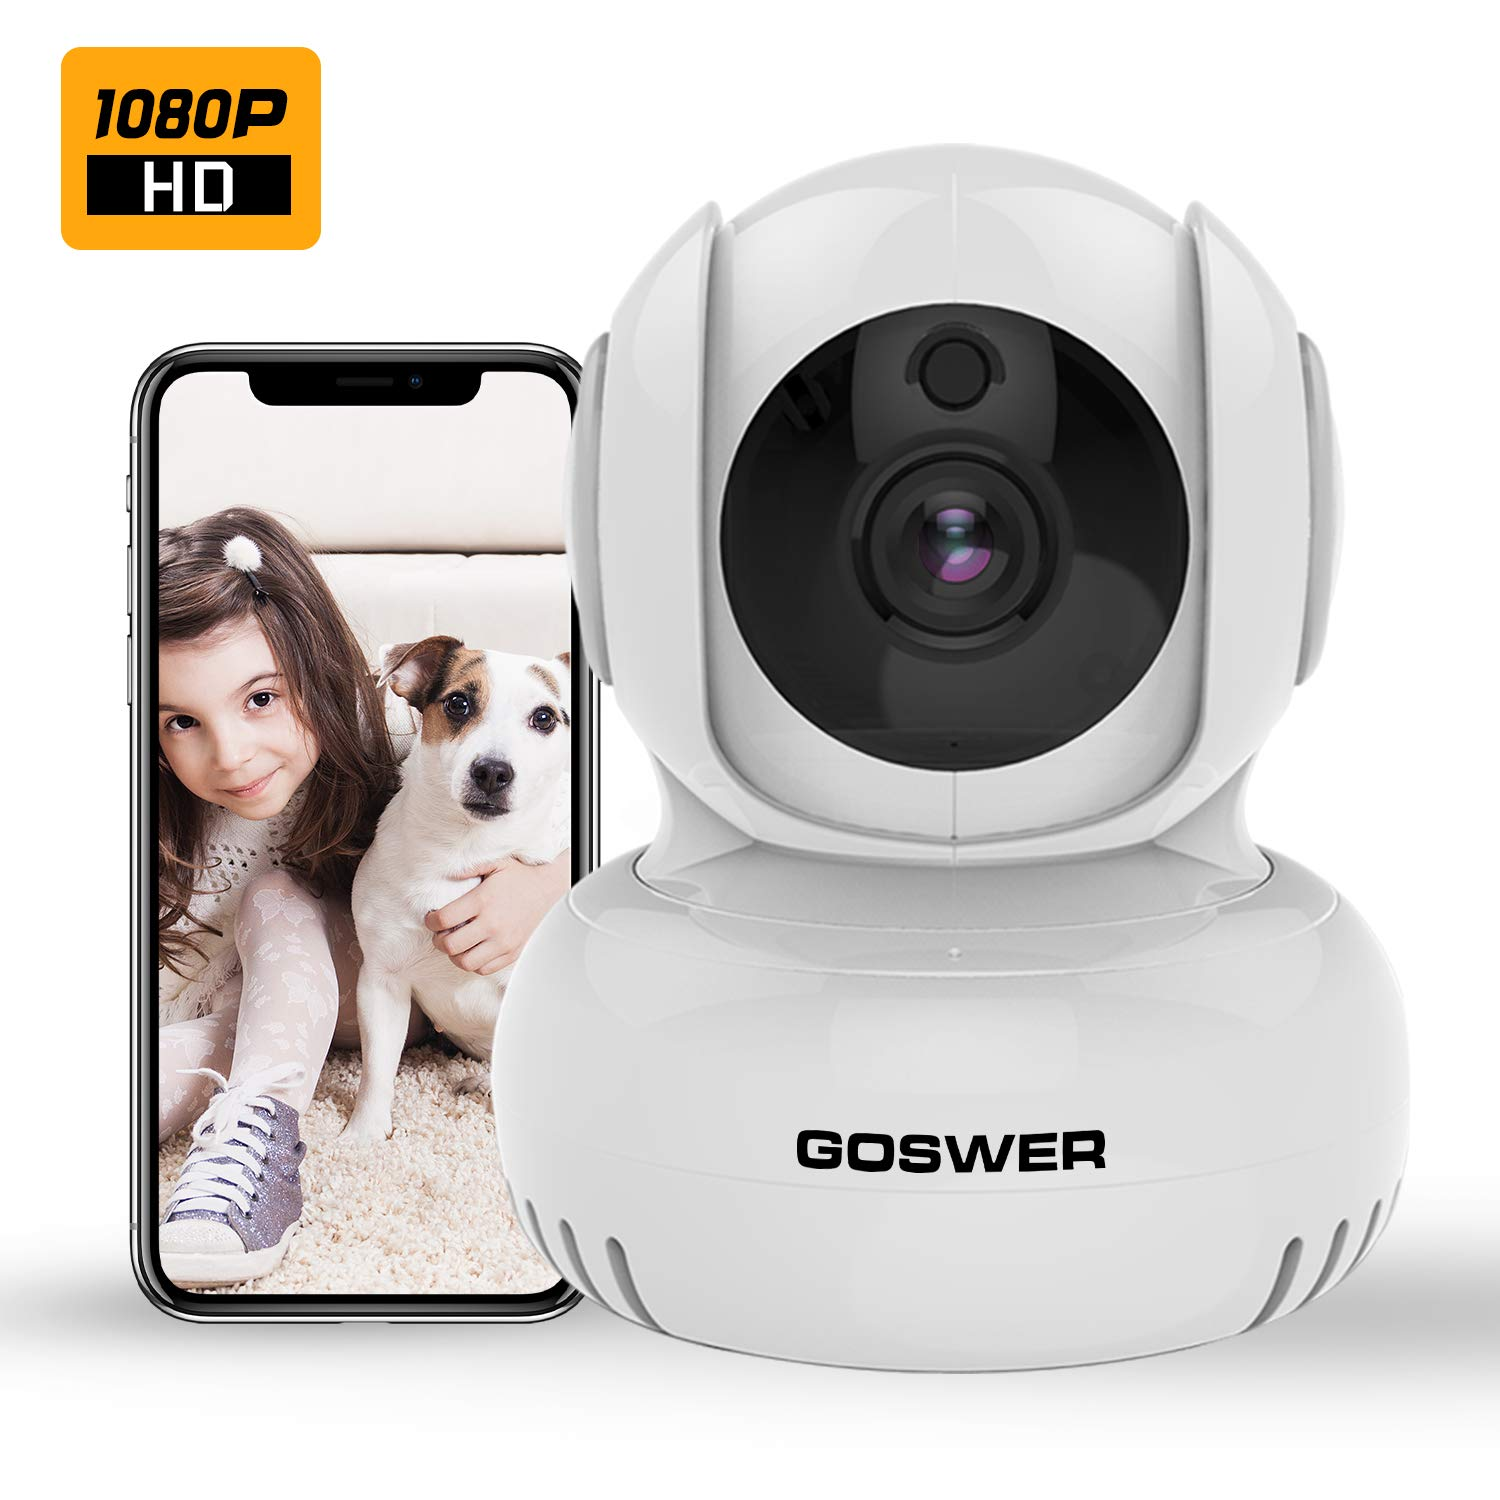 Baby Monitor,GOSWER 2.4G WiFi Camera Indoor Pan/Tilt/Zoom Security Wireless IP Camera 1080P Home Surveillance with Motion Detection, IR Night Vision, Two-Way Audio,Temp Alarm,Alexa,Cloud Service